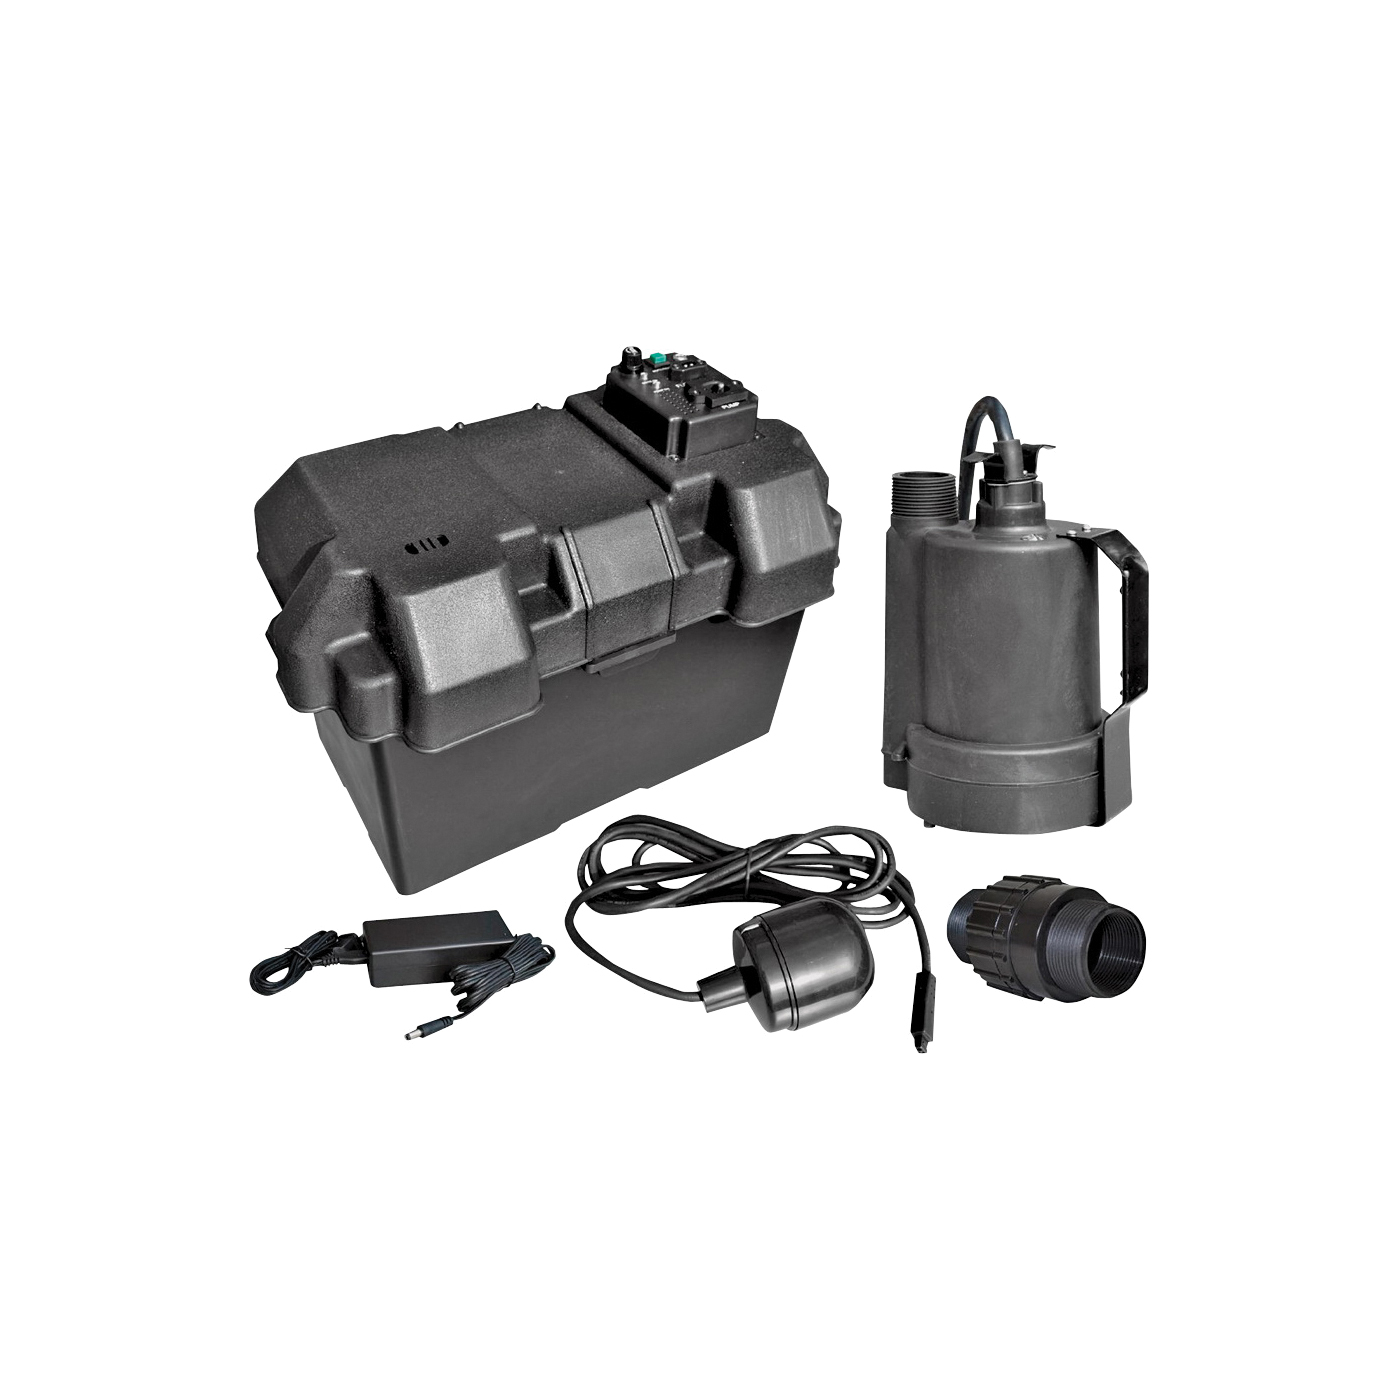 Picture of SUPERIOR PUMP 92900 Battery Back Up Kit, Thermoplastic